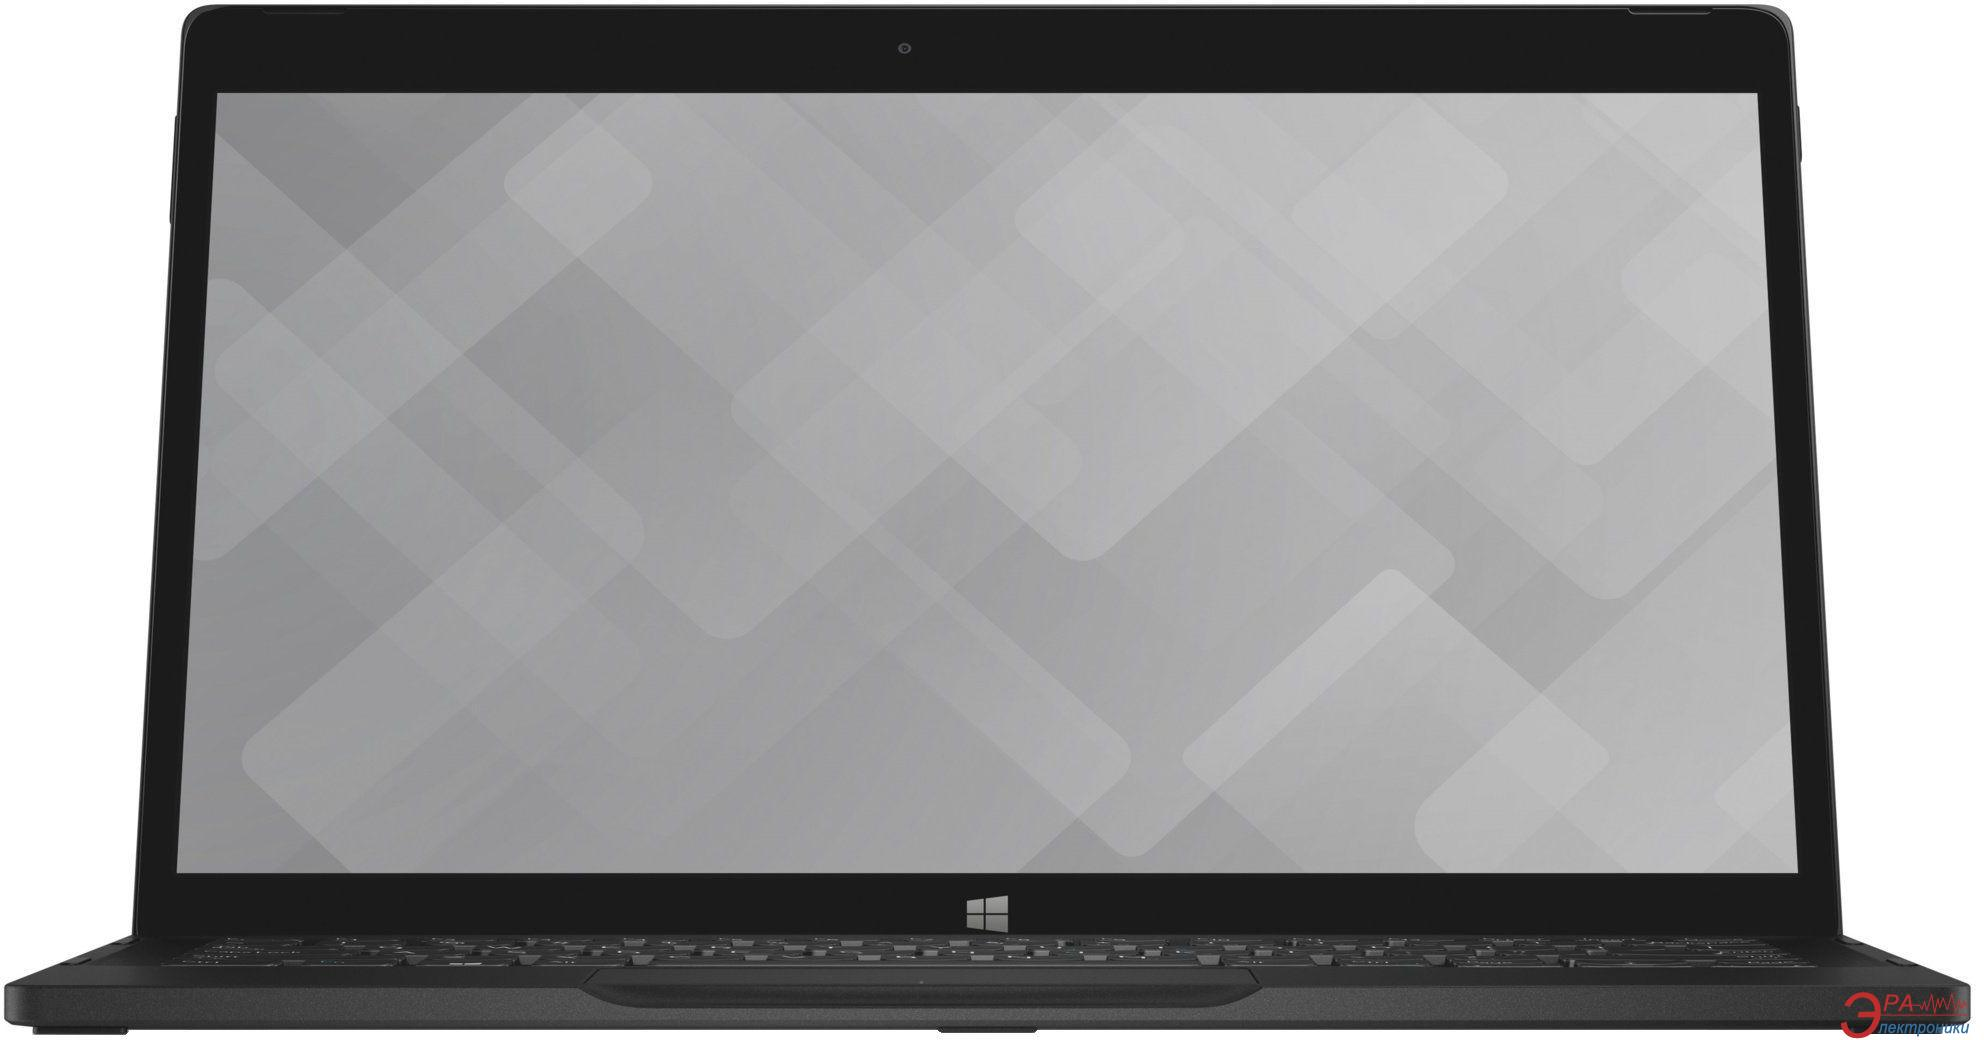 Ноутбук Dell Latitude E7275 (N001LE727512EMEA) Black 12,5